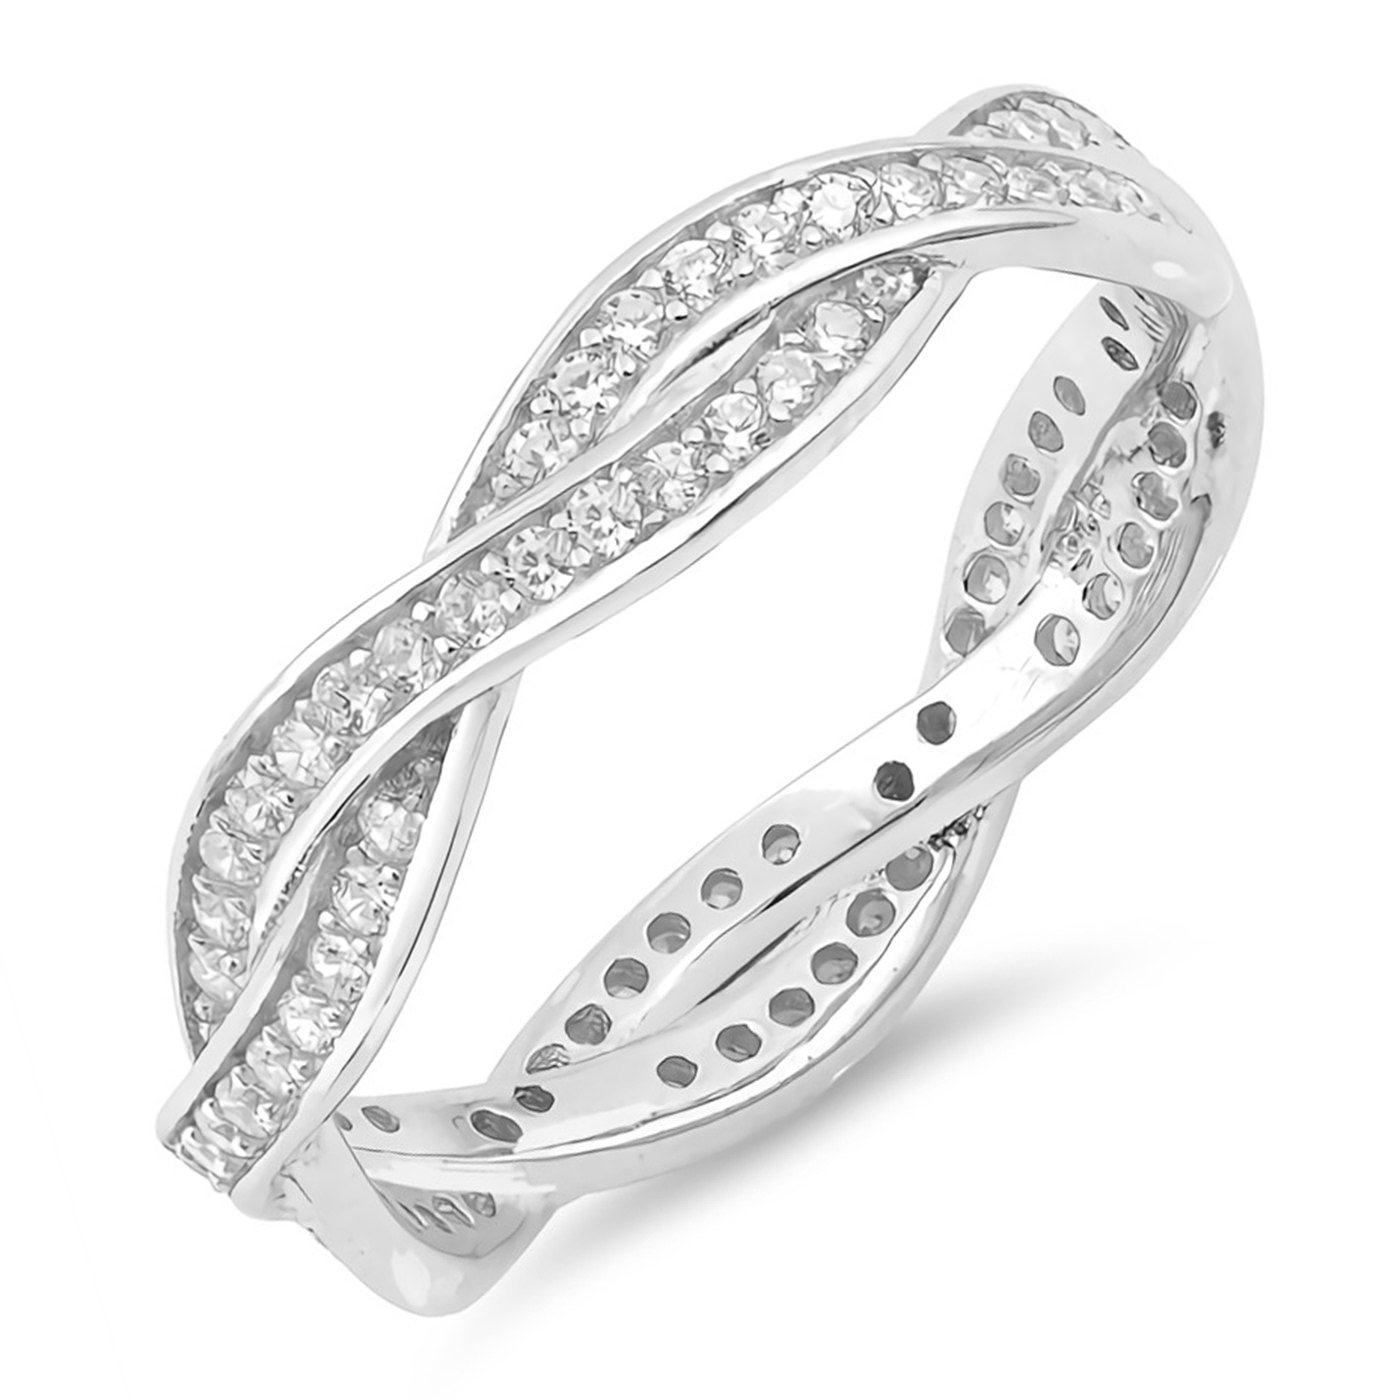 Infinity Twist Braid Engagement Promise Ring Womens Sterling Silver Cubic Zirconia Size 5